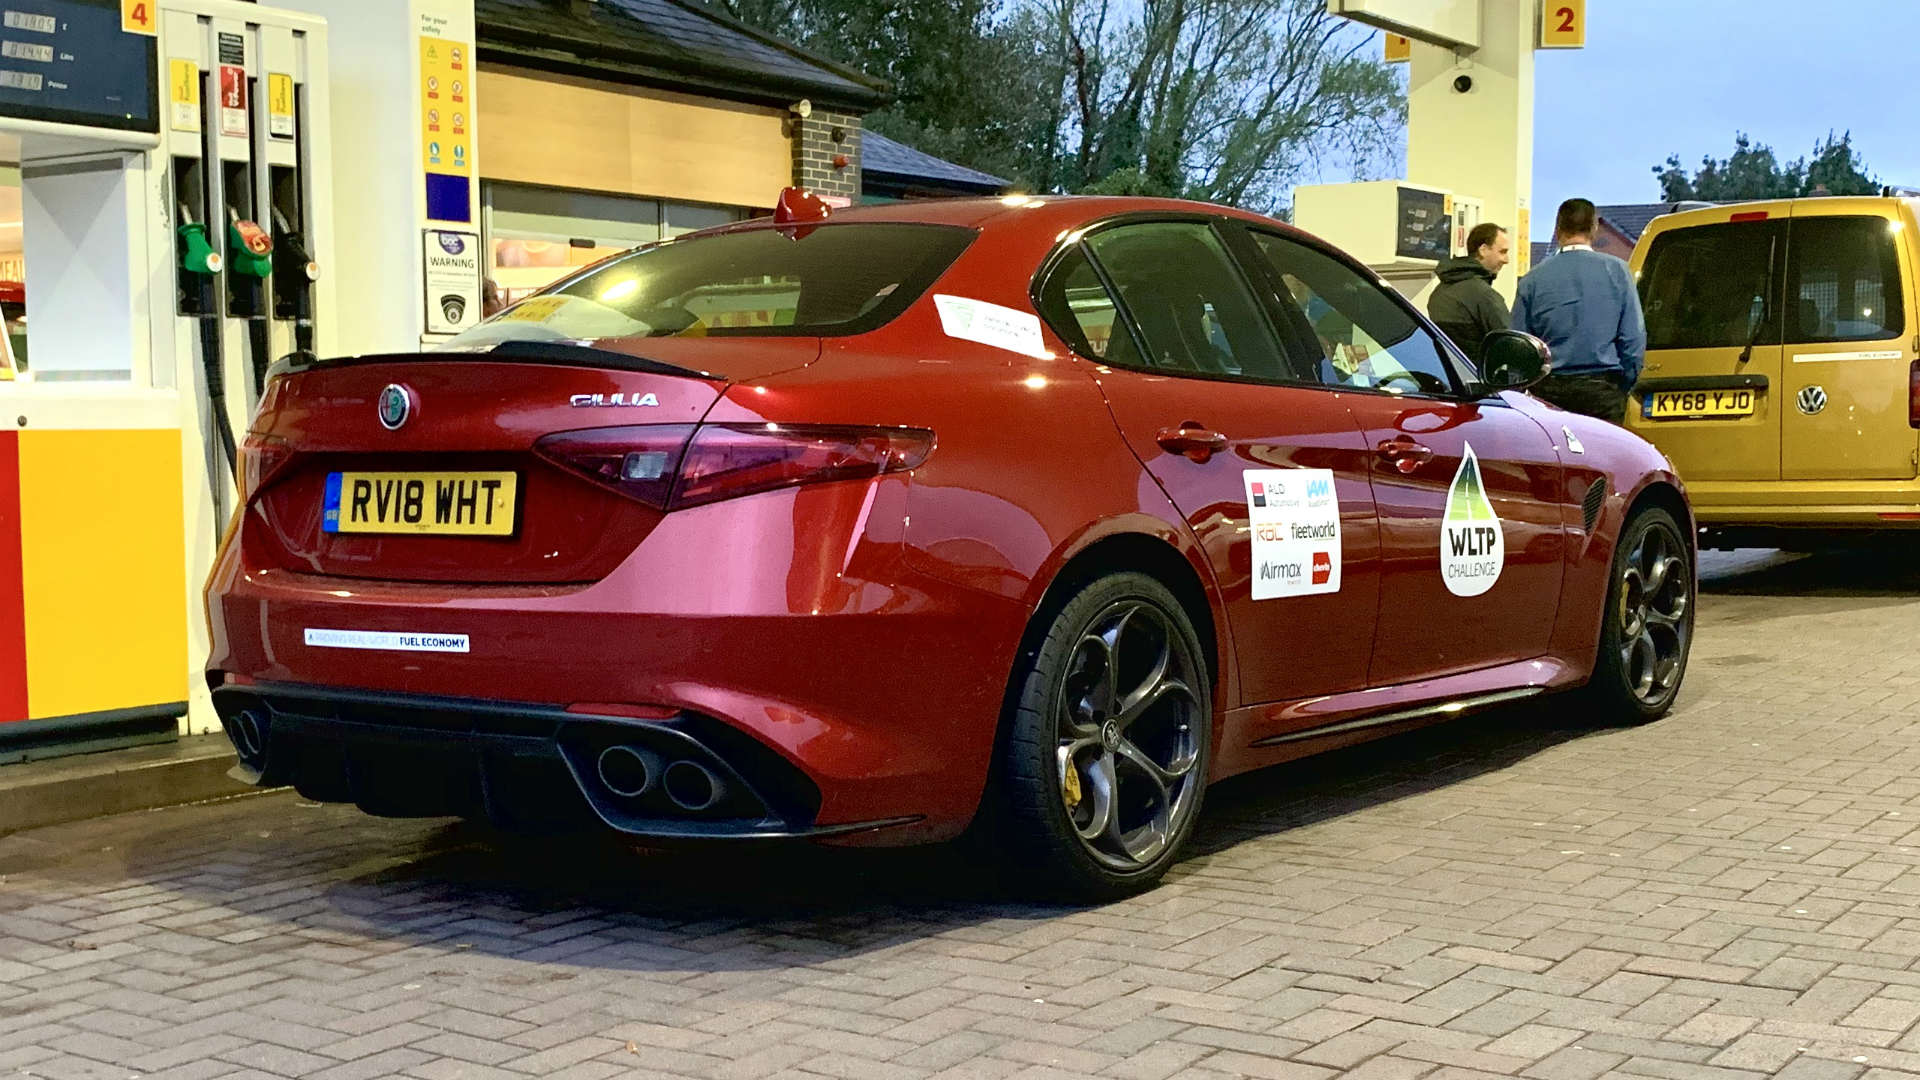 Alfa Romeo Giulia Quadrifoglio at the petrol station